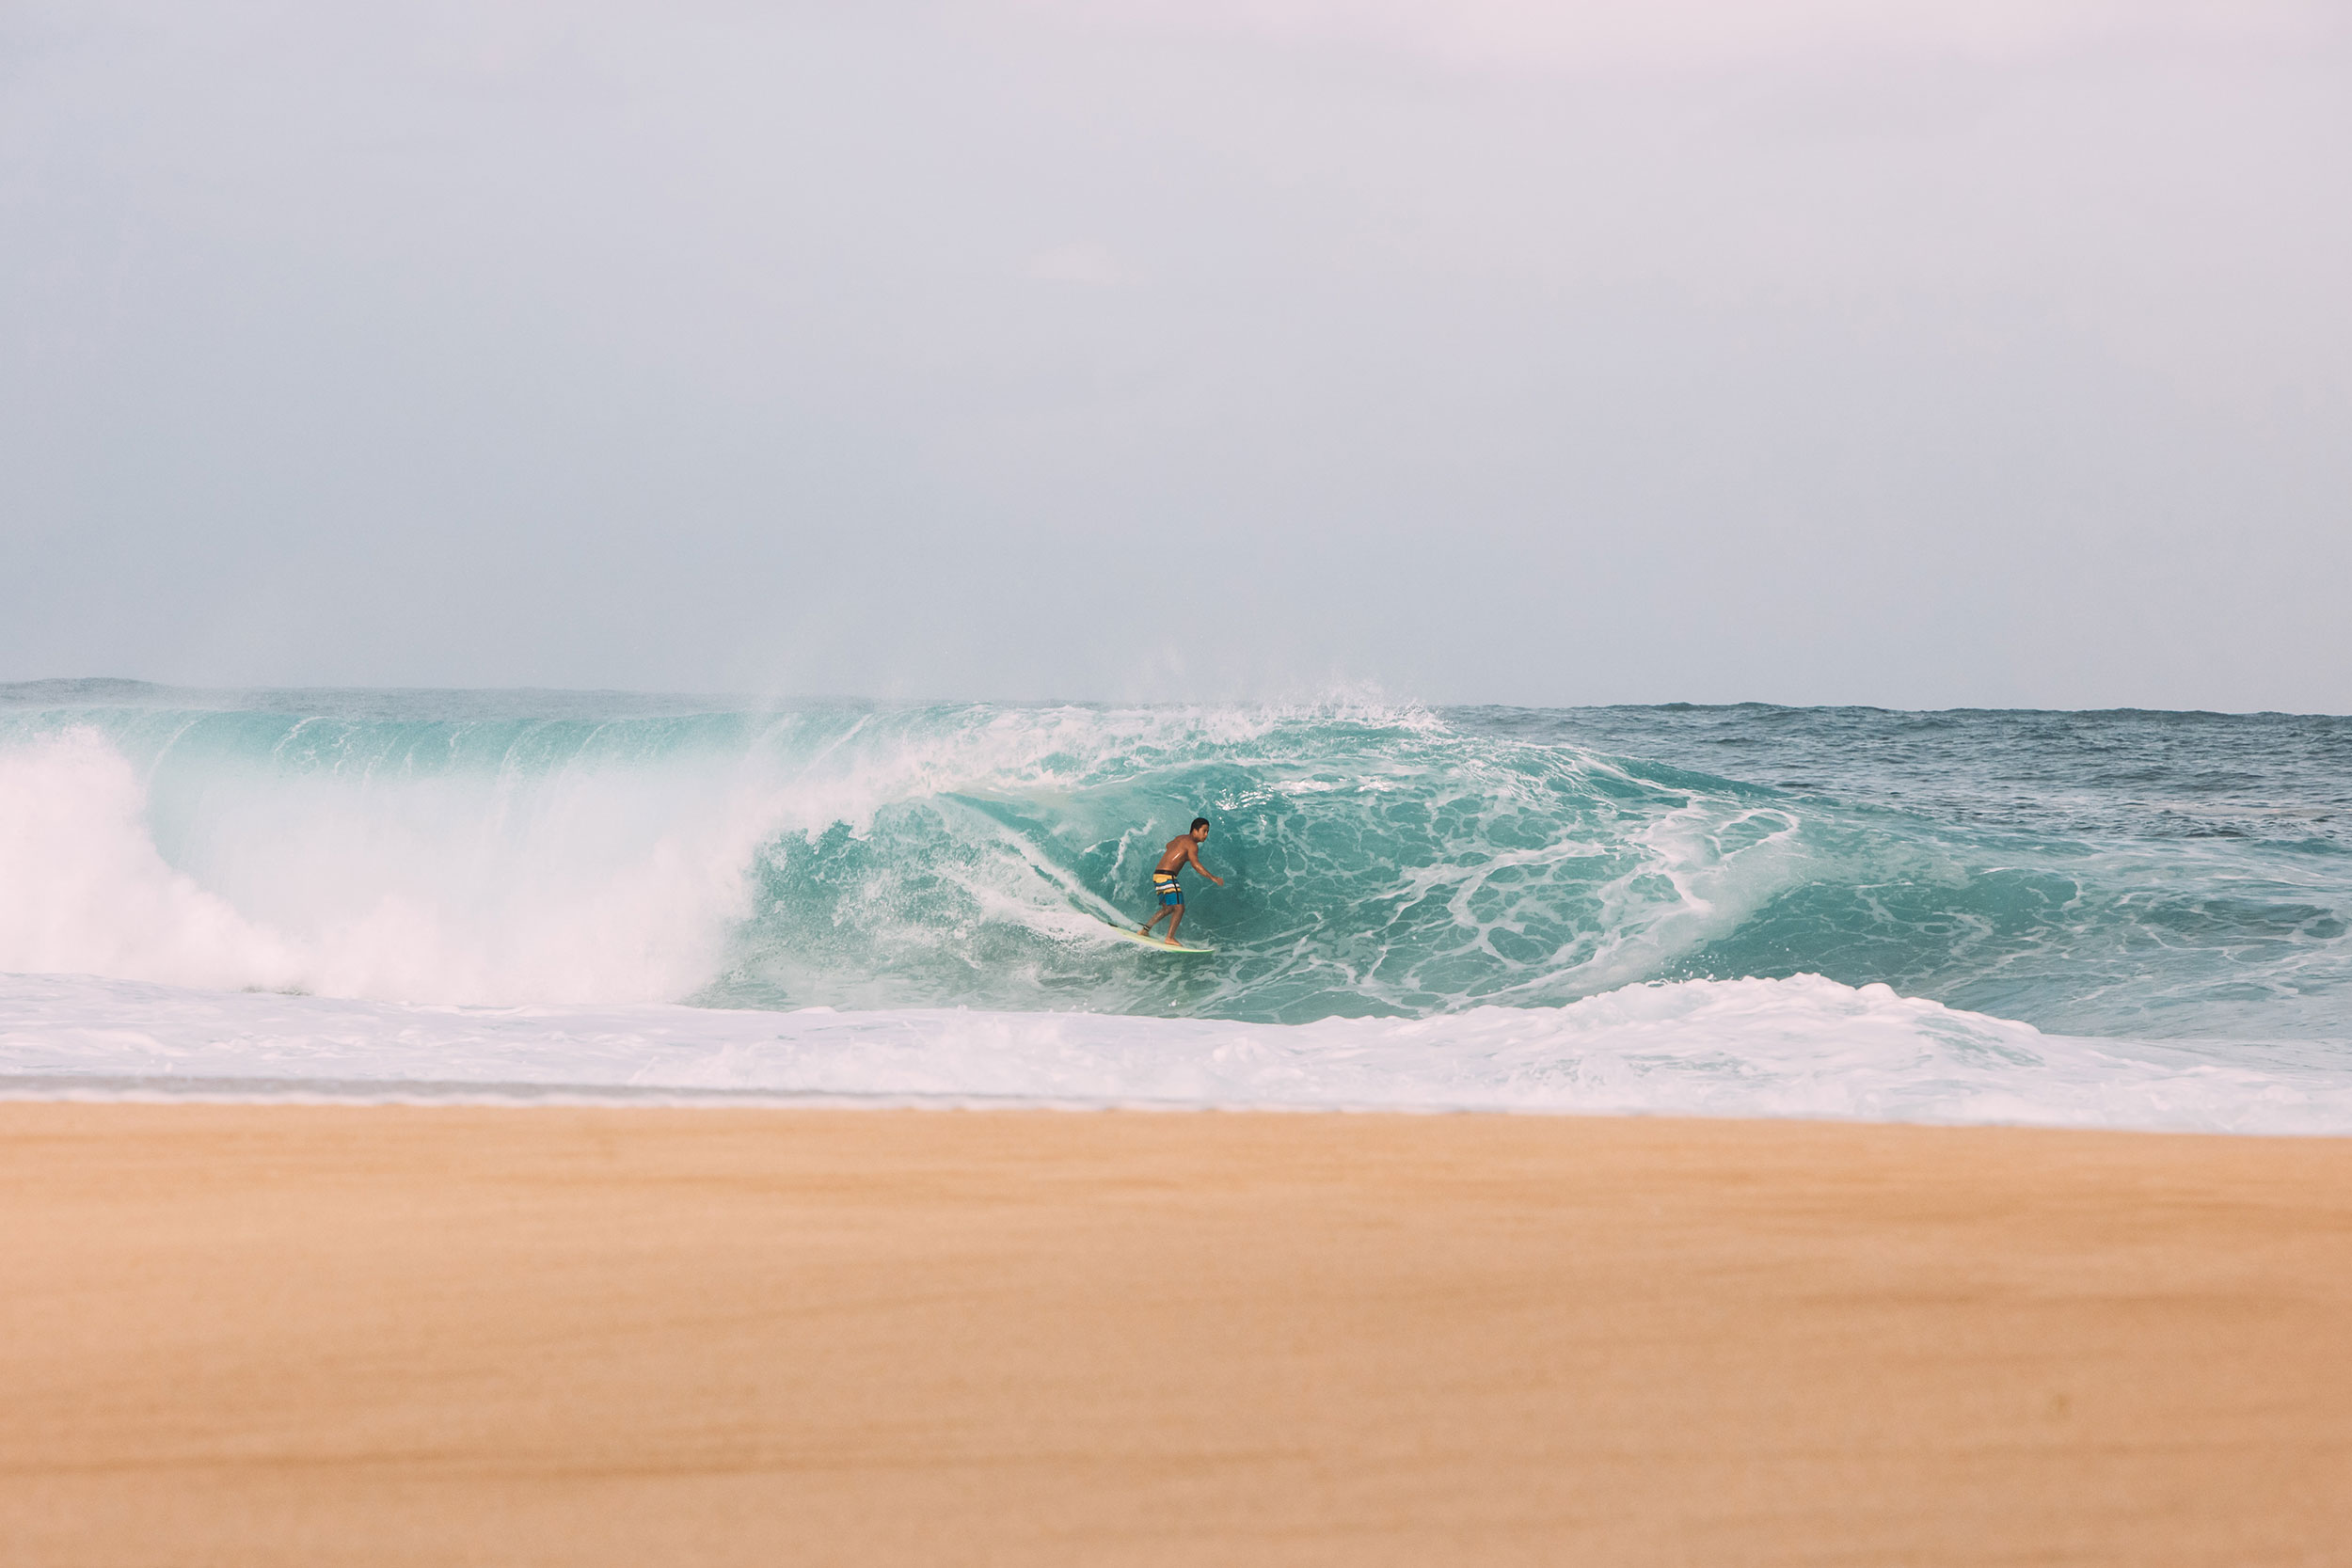 one of a set North Shore Oahu Hawaii surf photography ocean culture life a journey around the Hawaiian islands in search of open waters surfers, sharks and other ocean life underwater photography wanderlust explore our oceans waves and pipeline